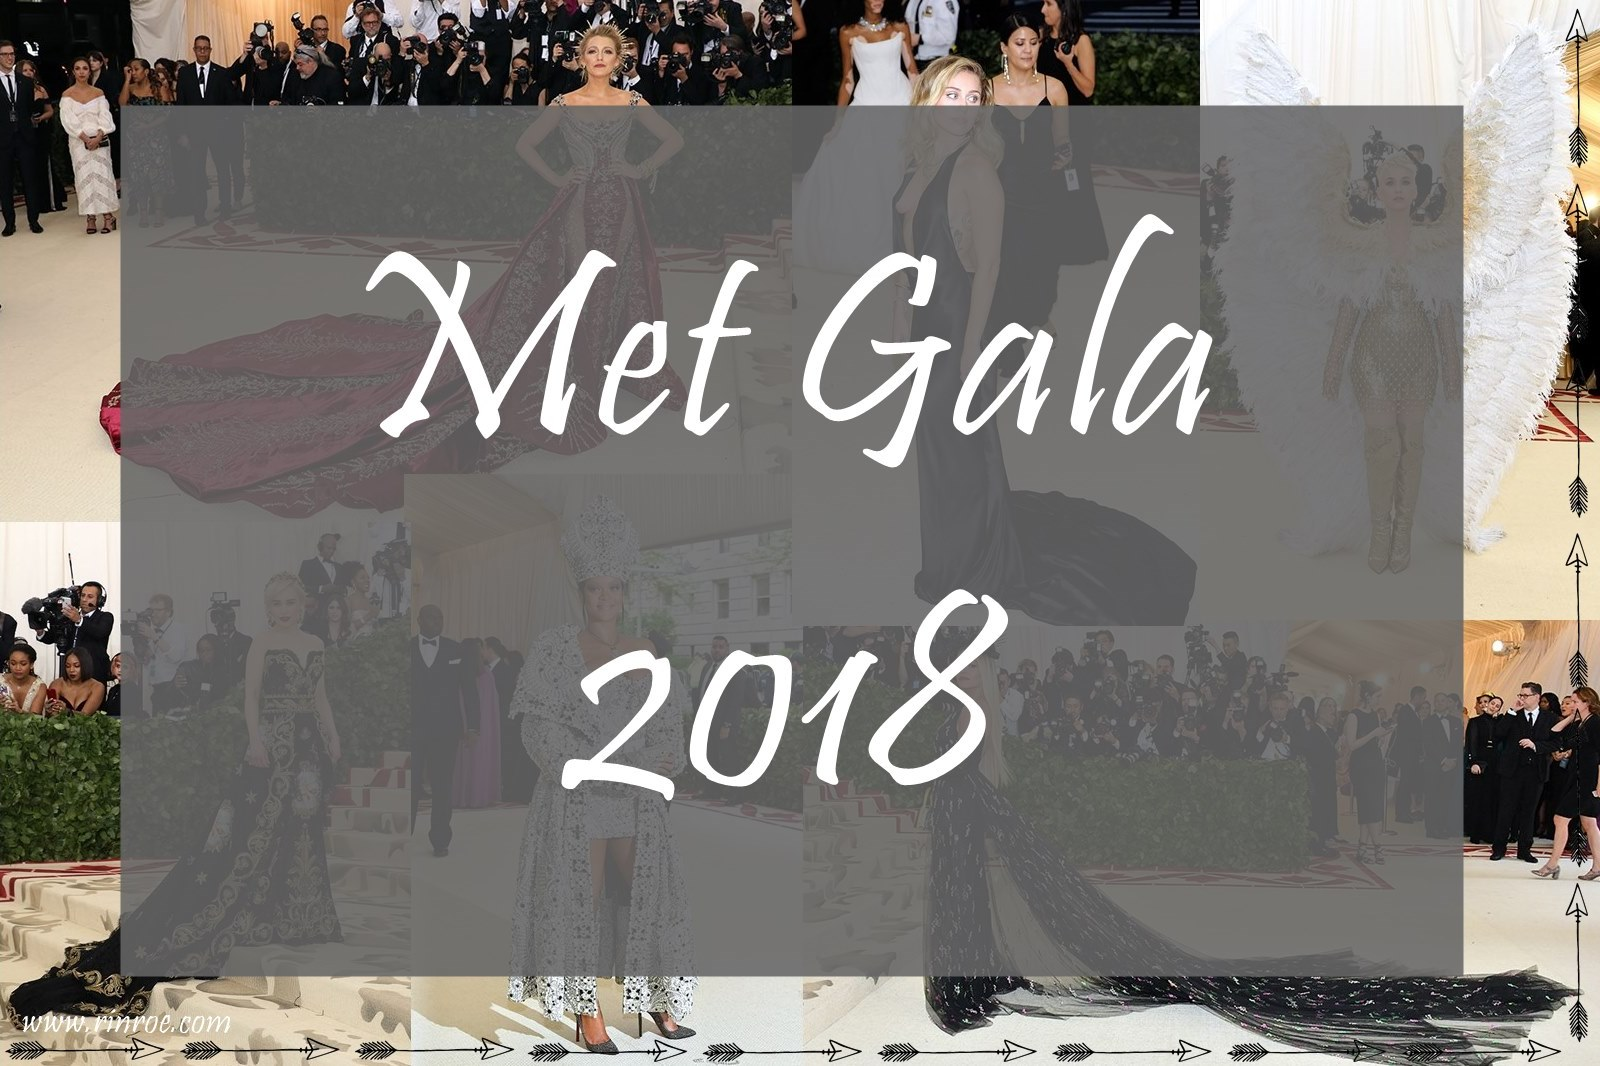 Met Gala: co to jest?